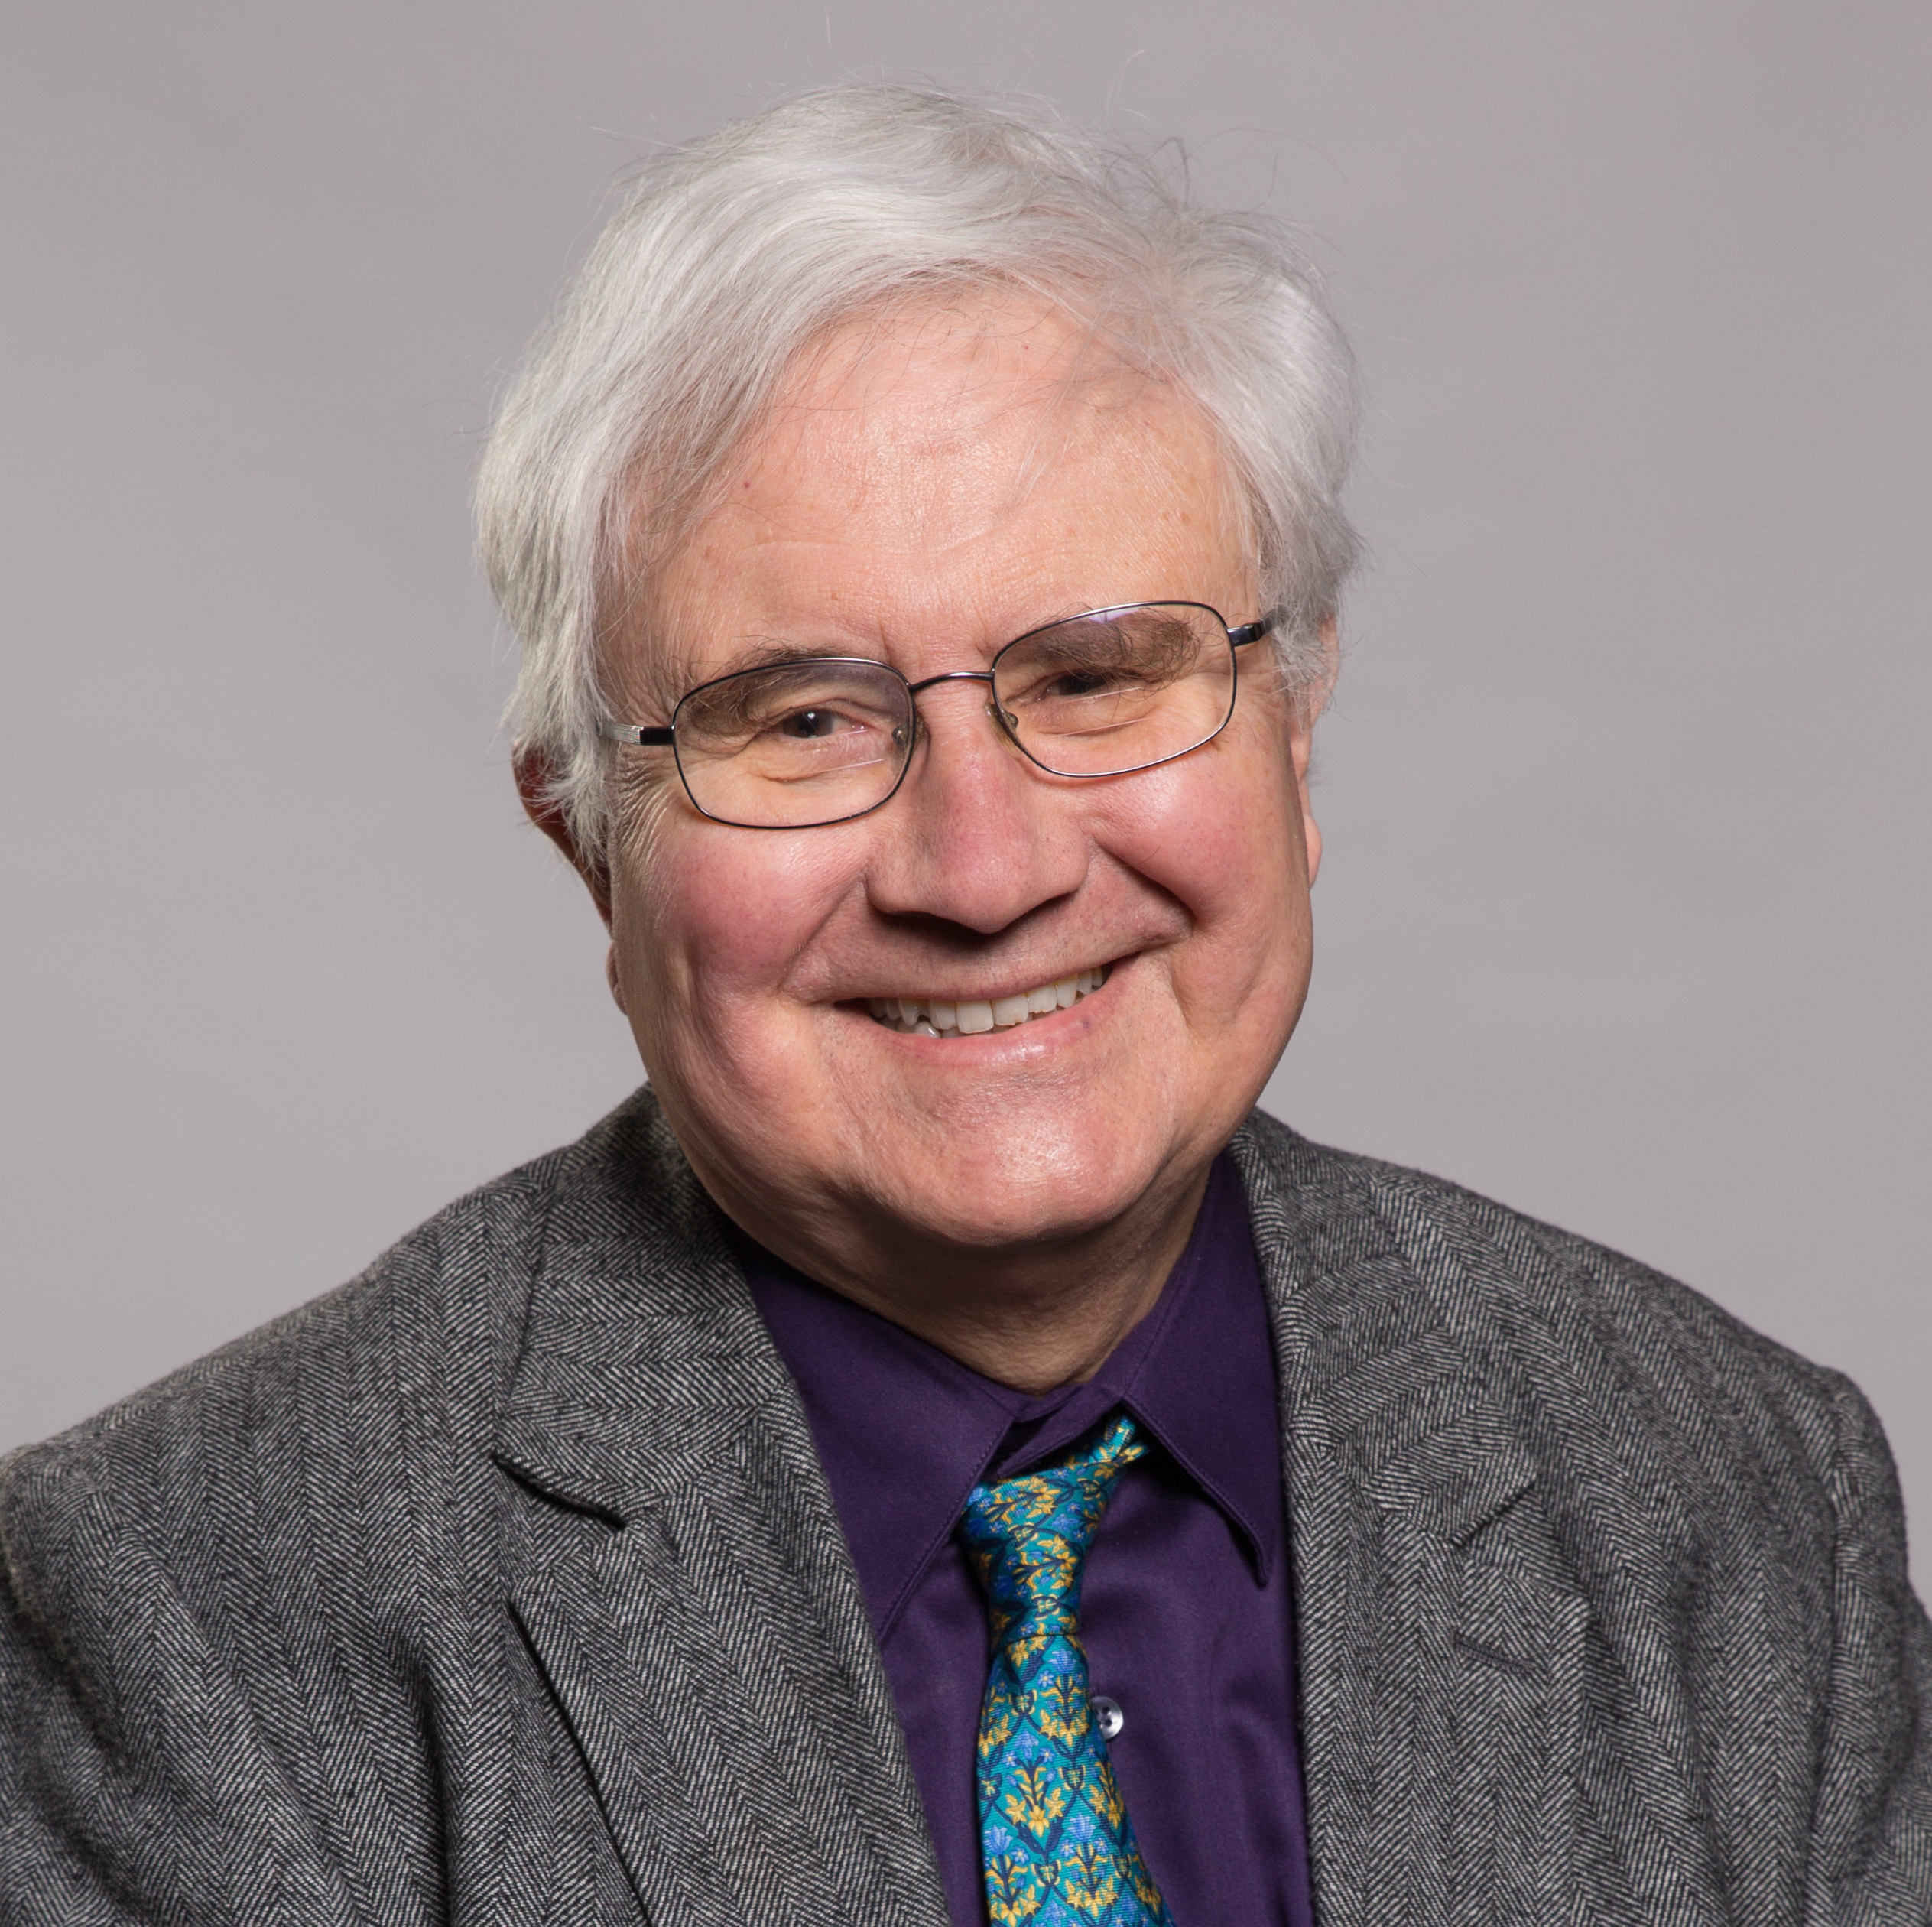 """Robert Kolb to Speak at Concordia Seminary on """"Luther's Fiercest Foes"""""""